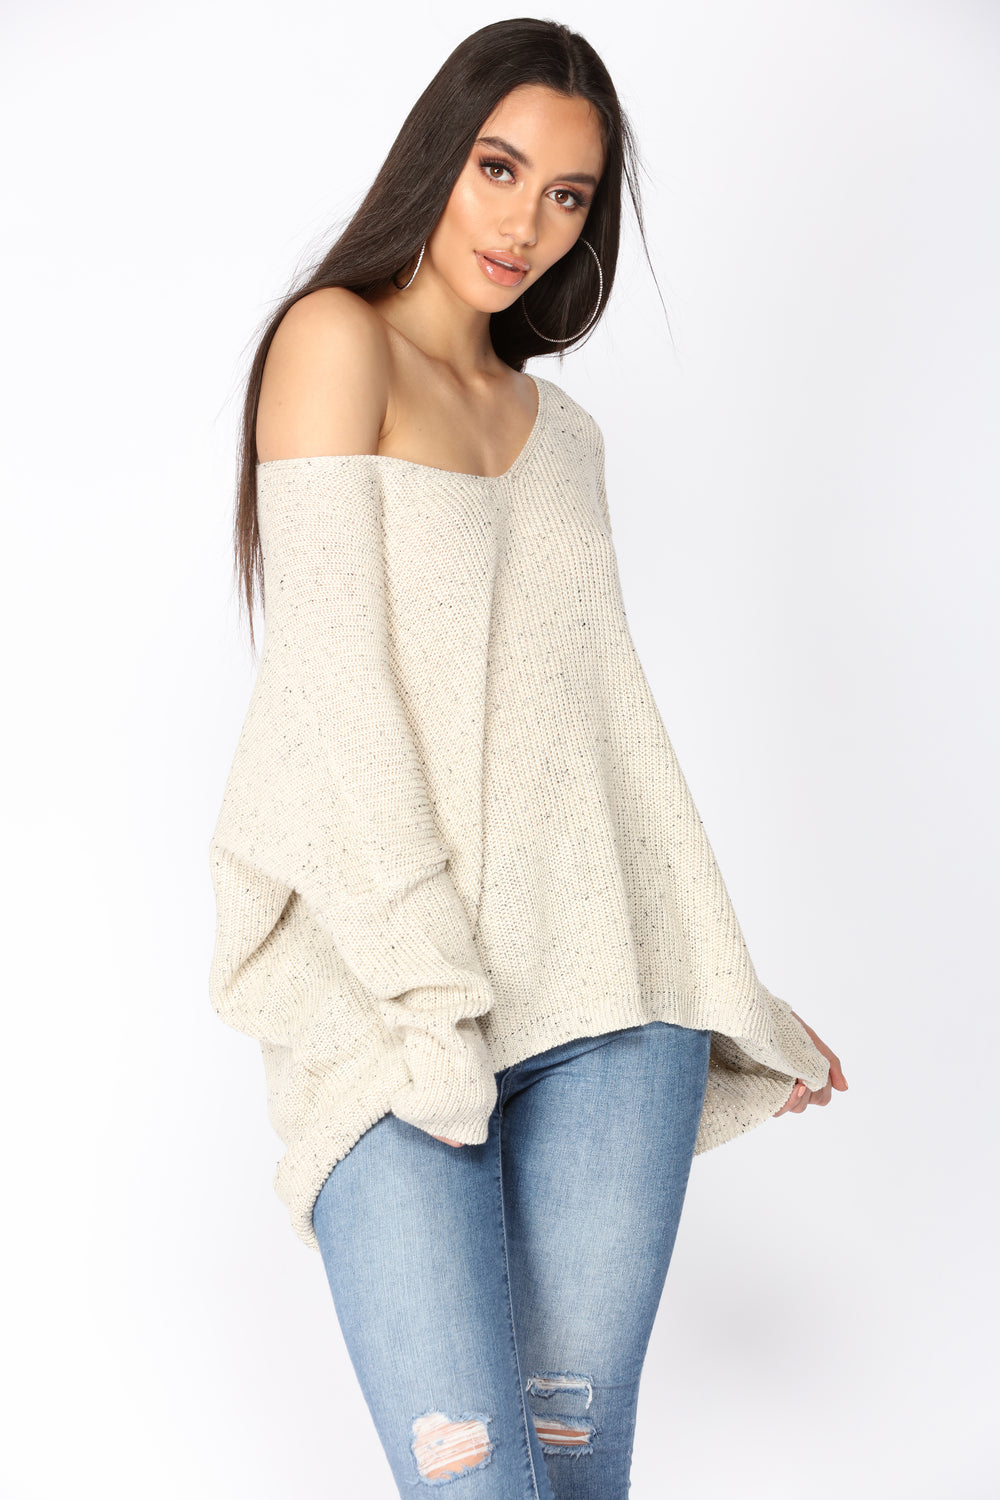 Hold Tighter Long Sleeve Sweater - Ivory